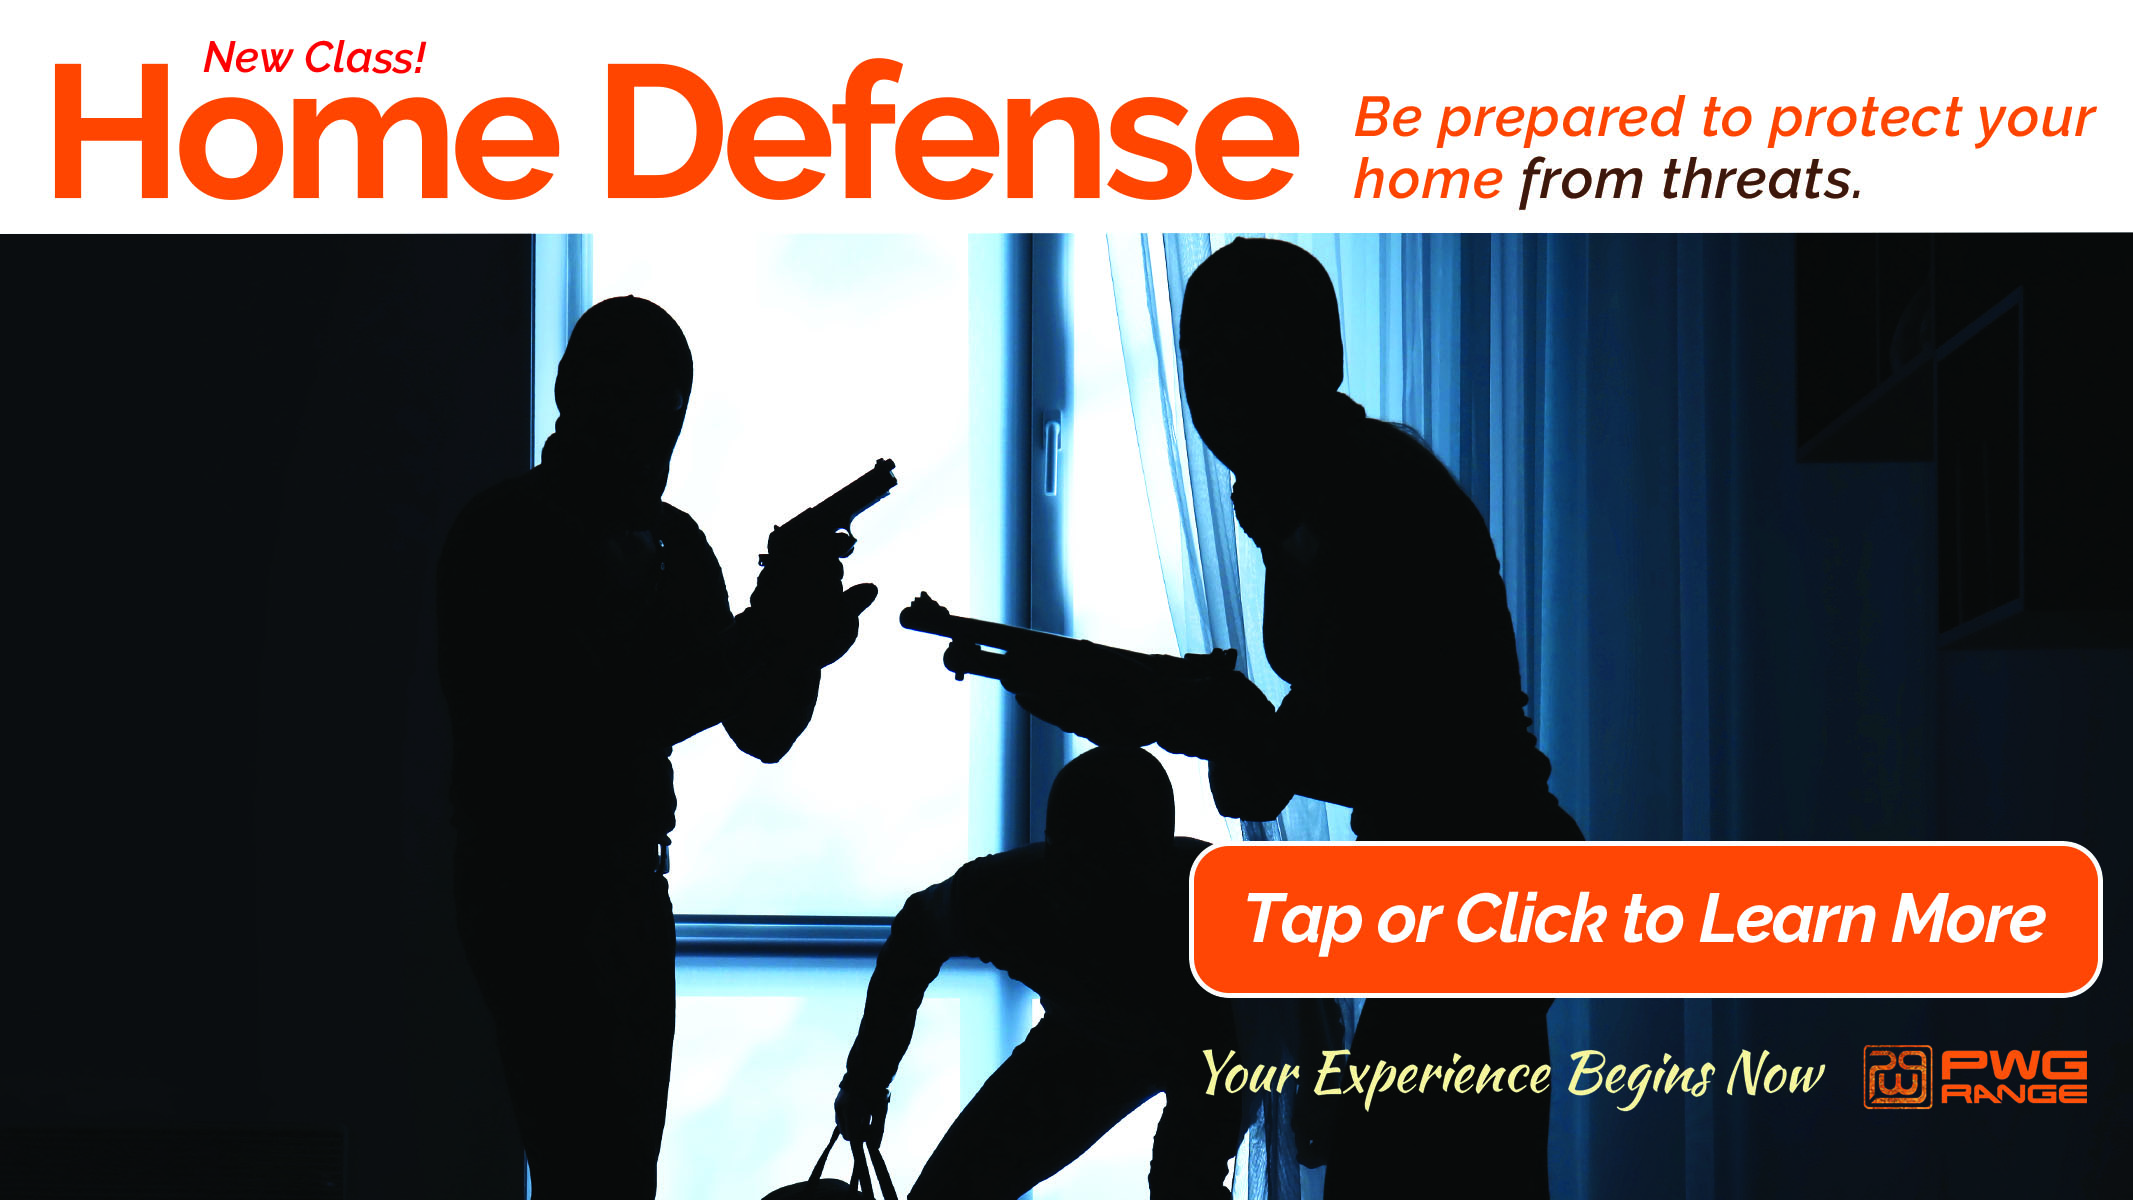 Learn More About Home Defense